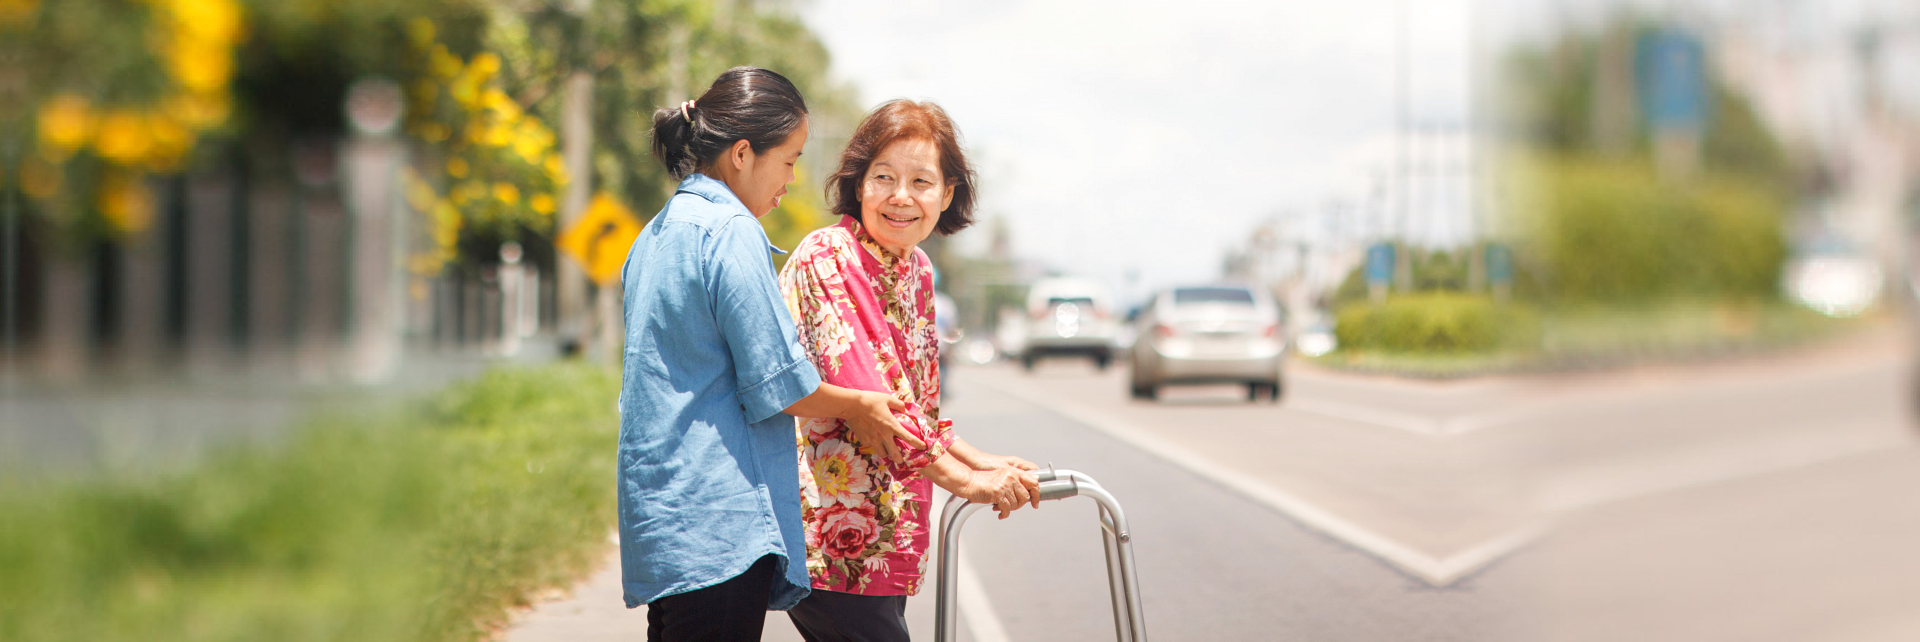 lady assisting elderly woman in crosing the street